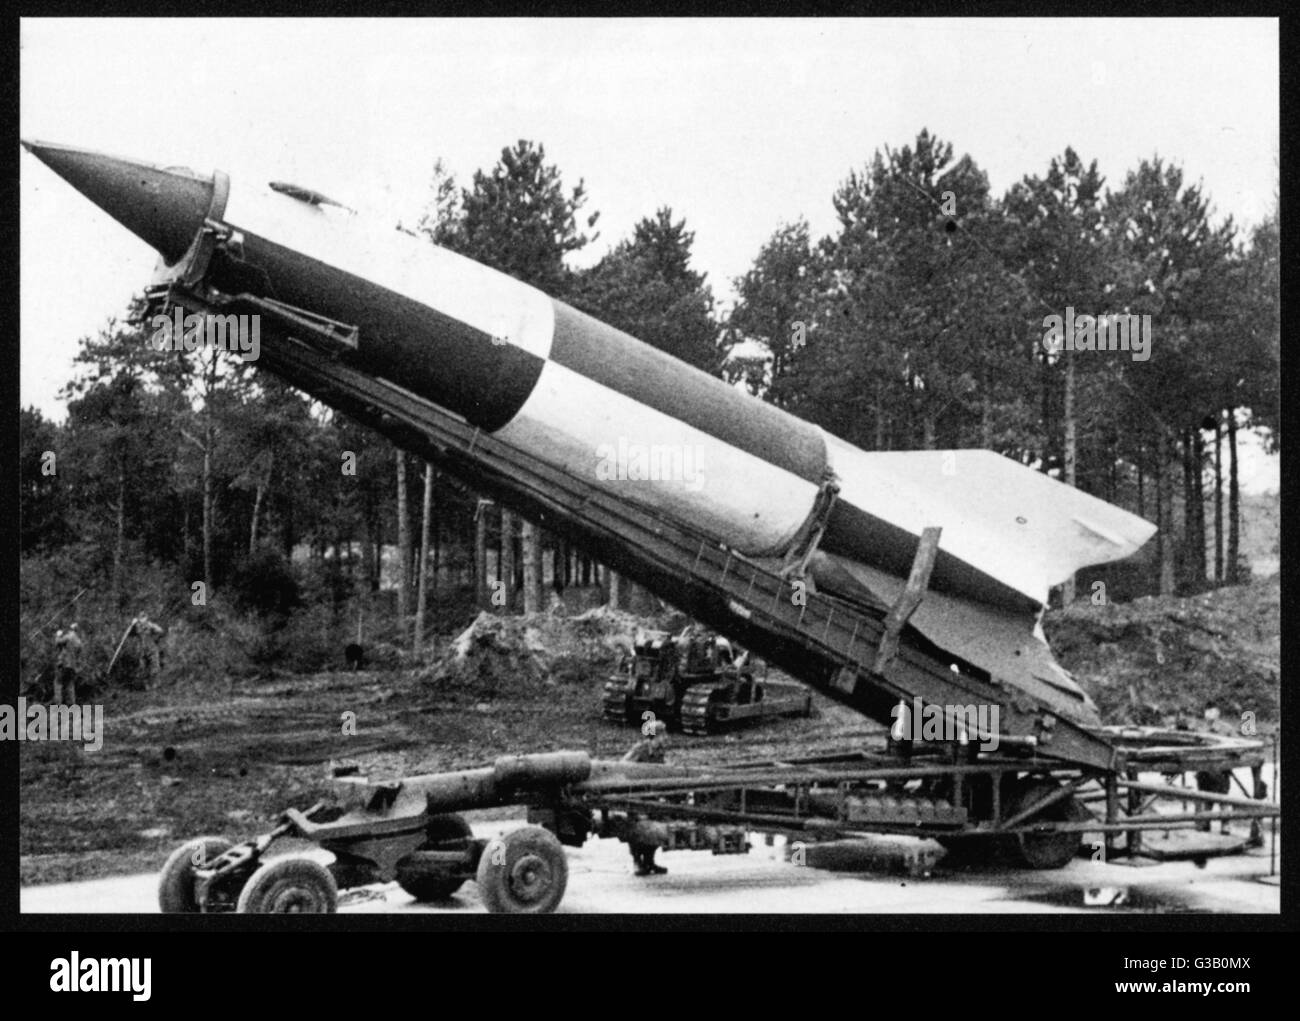 A V2 rocket on the launch pad. More elaborate than the V1 ...